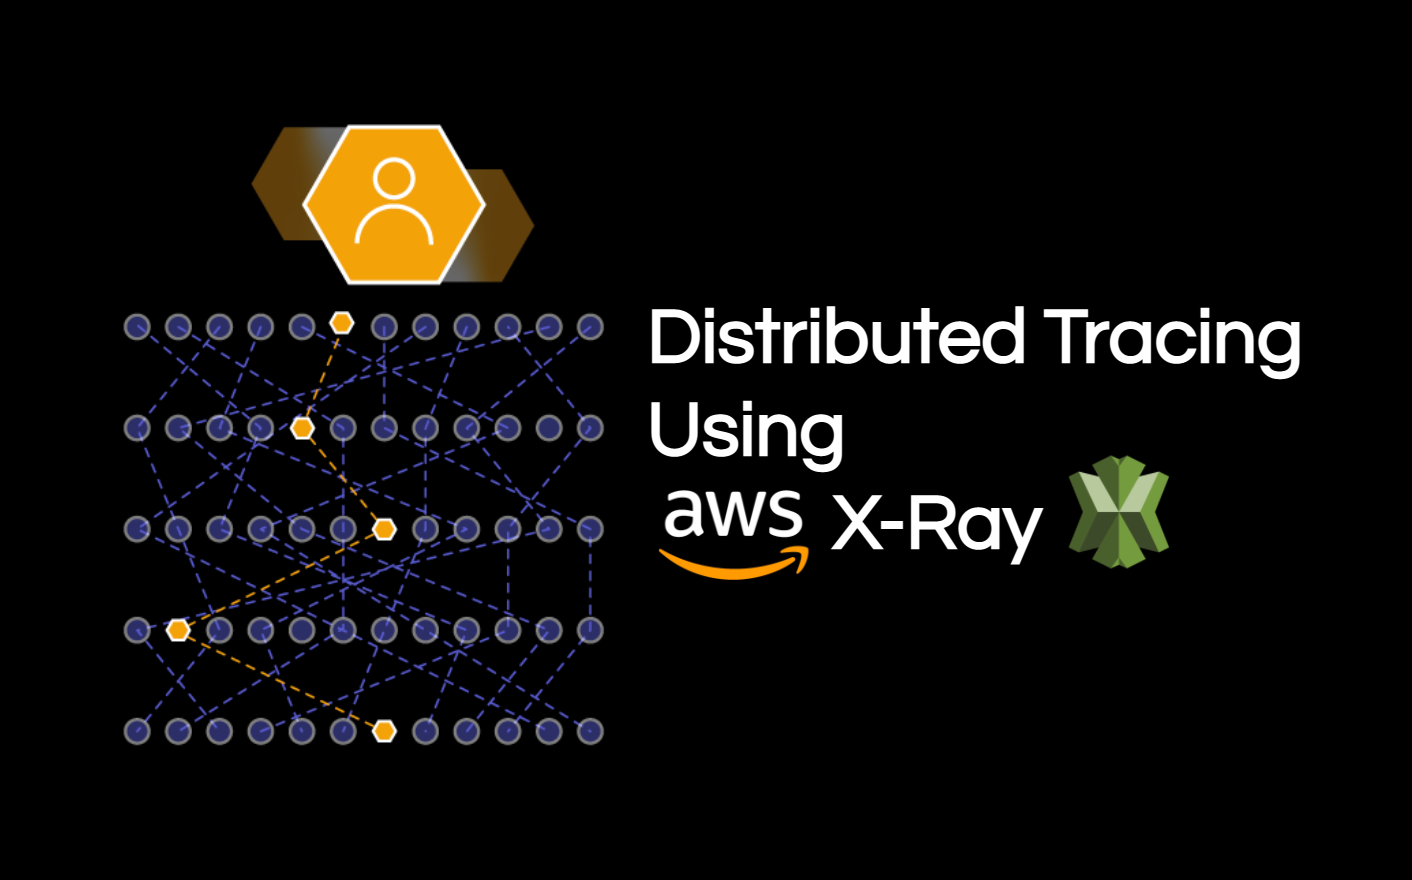 Distributed Tracing using AWS X-Ray